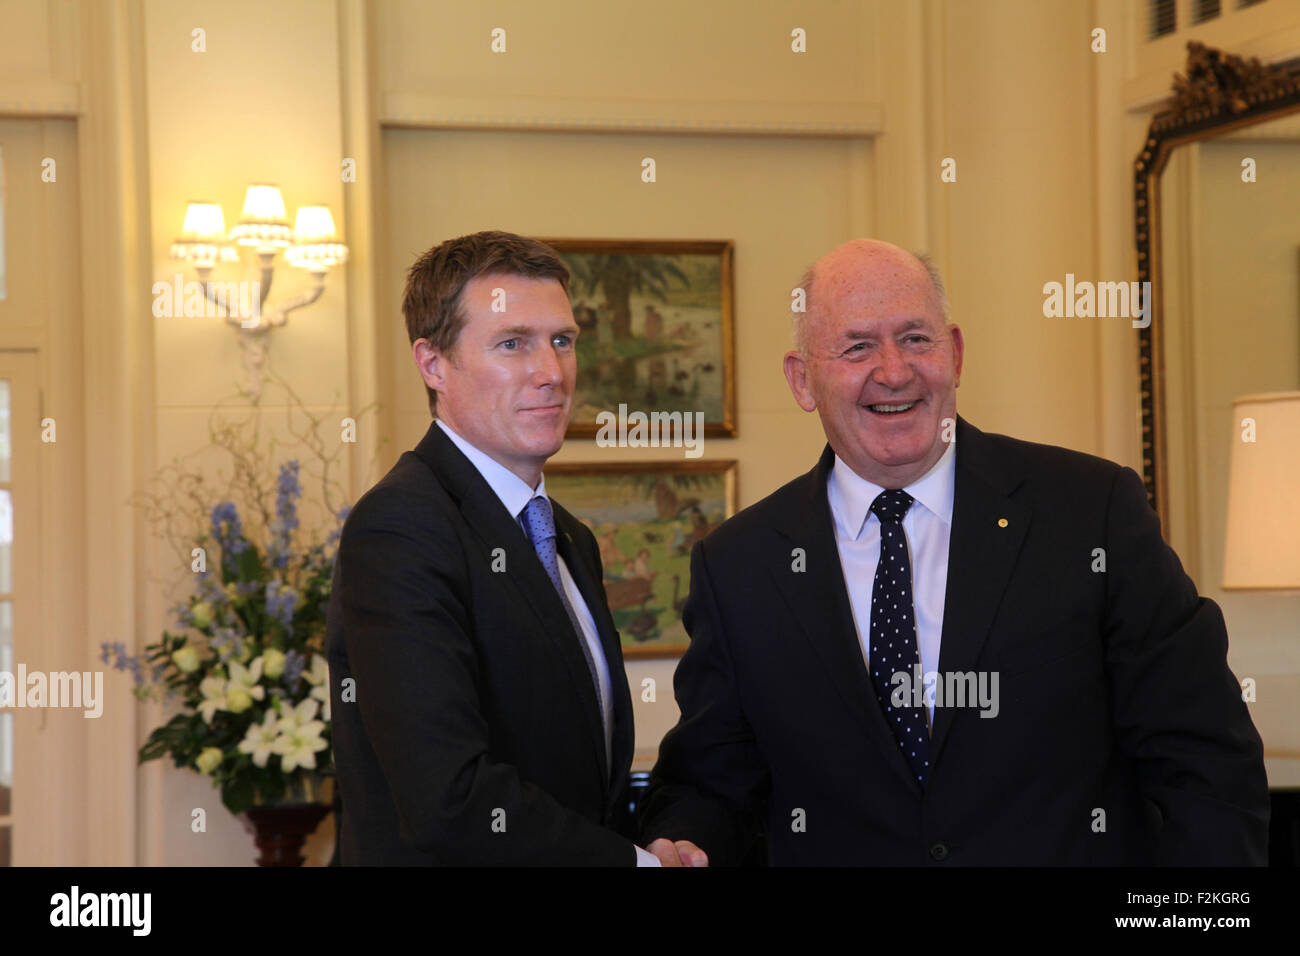 Canberra, Australia. 21st Sep, 2015. Christian Porter (L) is sworn in as Minister for Social Services by Governor - Stock Image